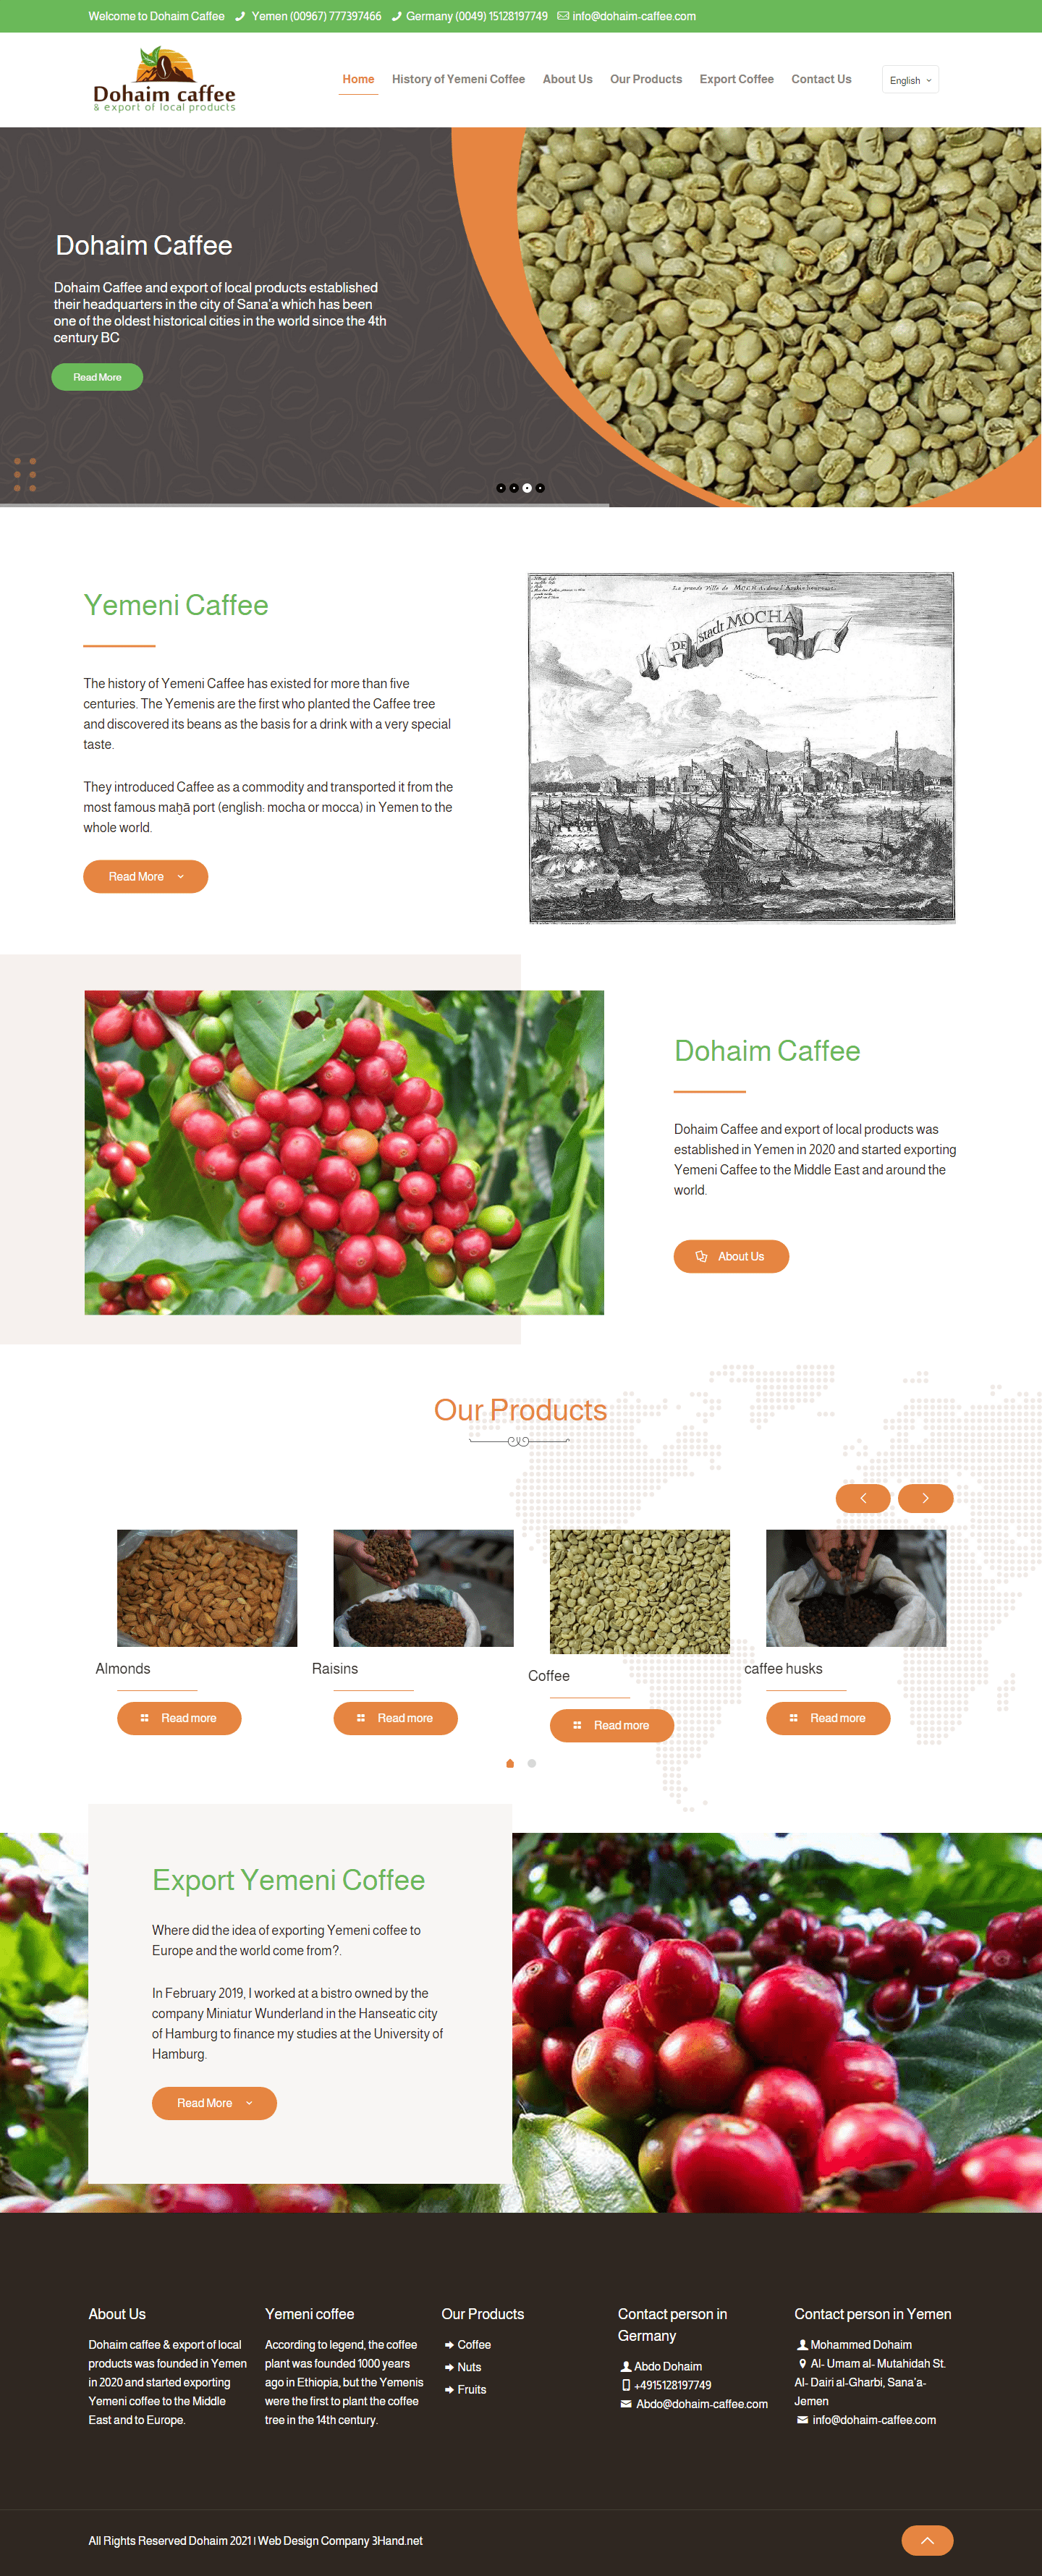 Dohaim-Coffee-–-Export-of-local-products